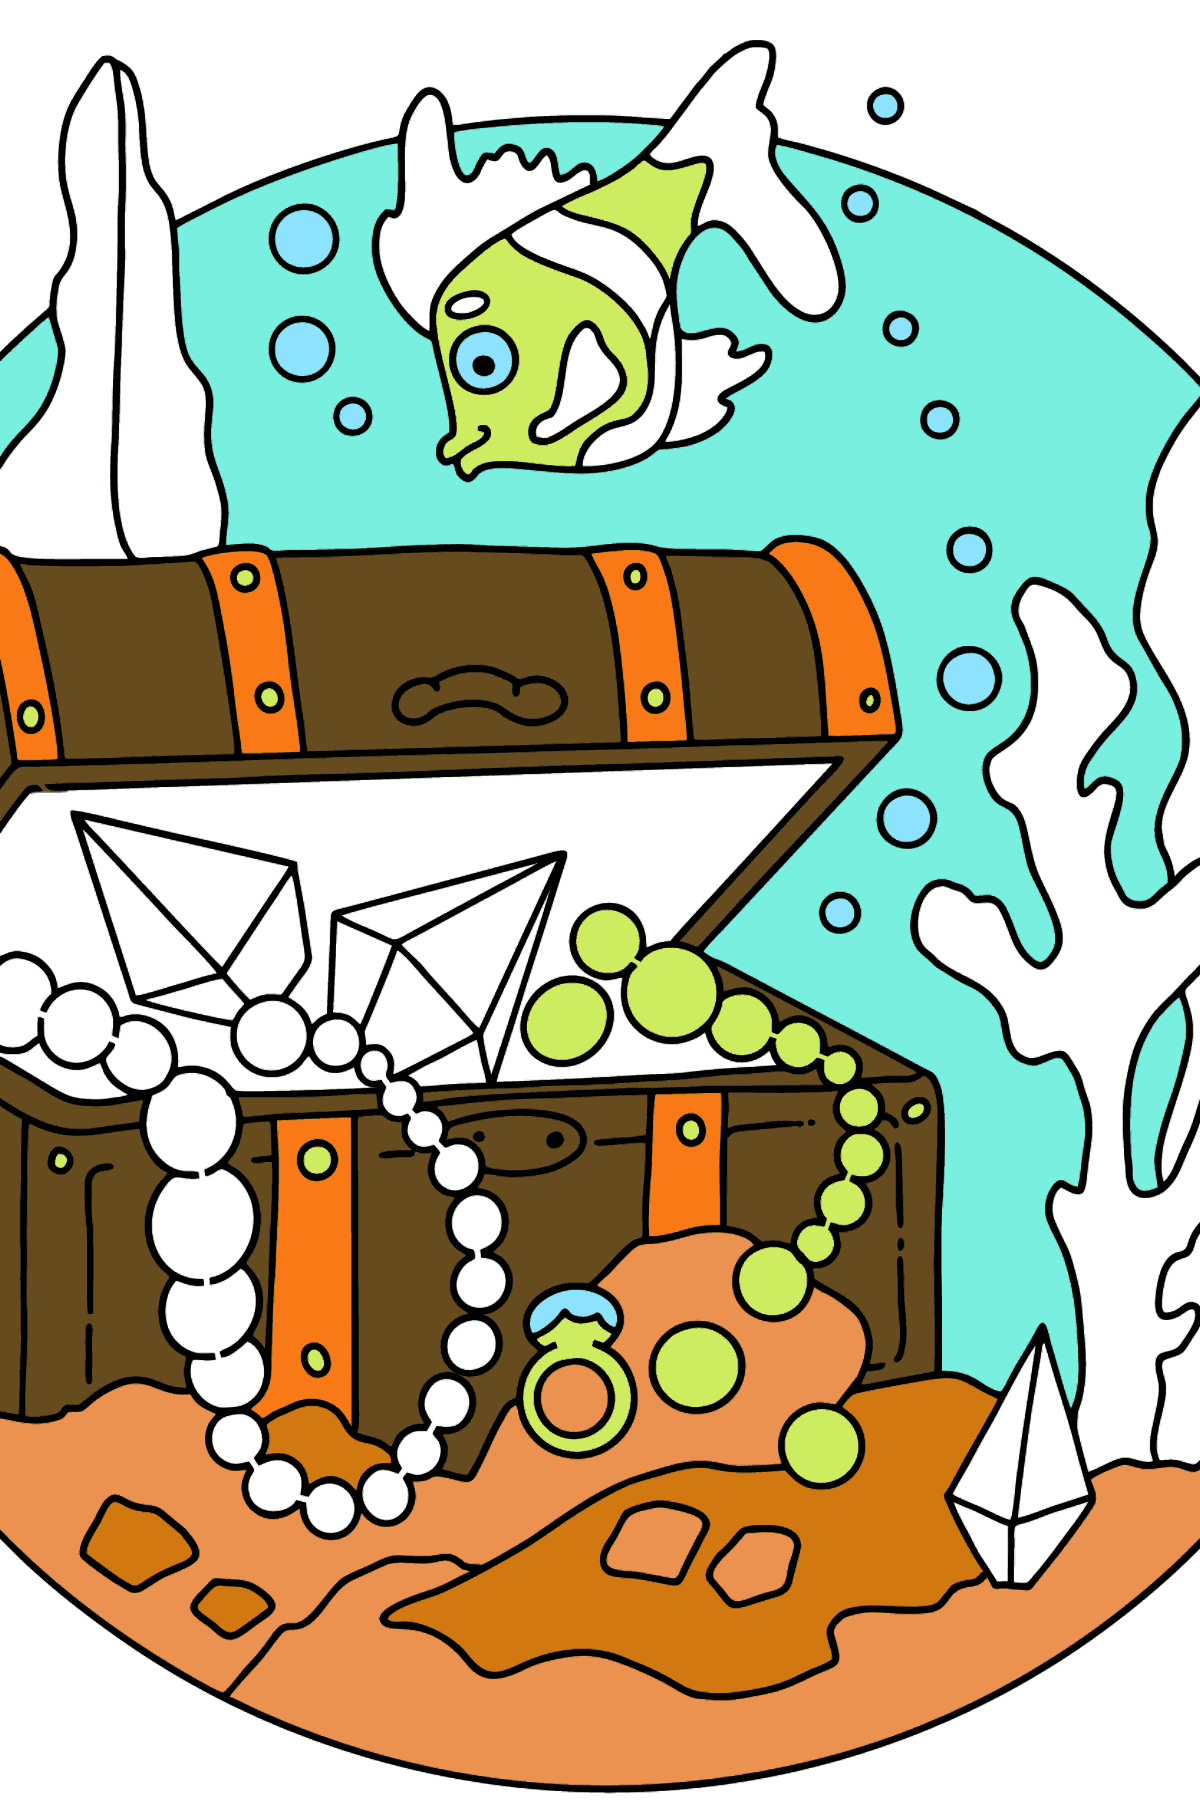 Coloring Page - A Fish is Swimming Around a Pirate's Chest - Coloring Pages for Kids